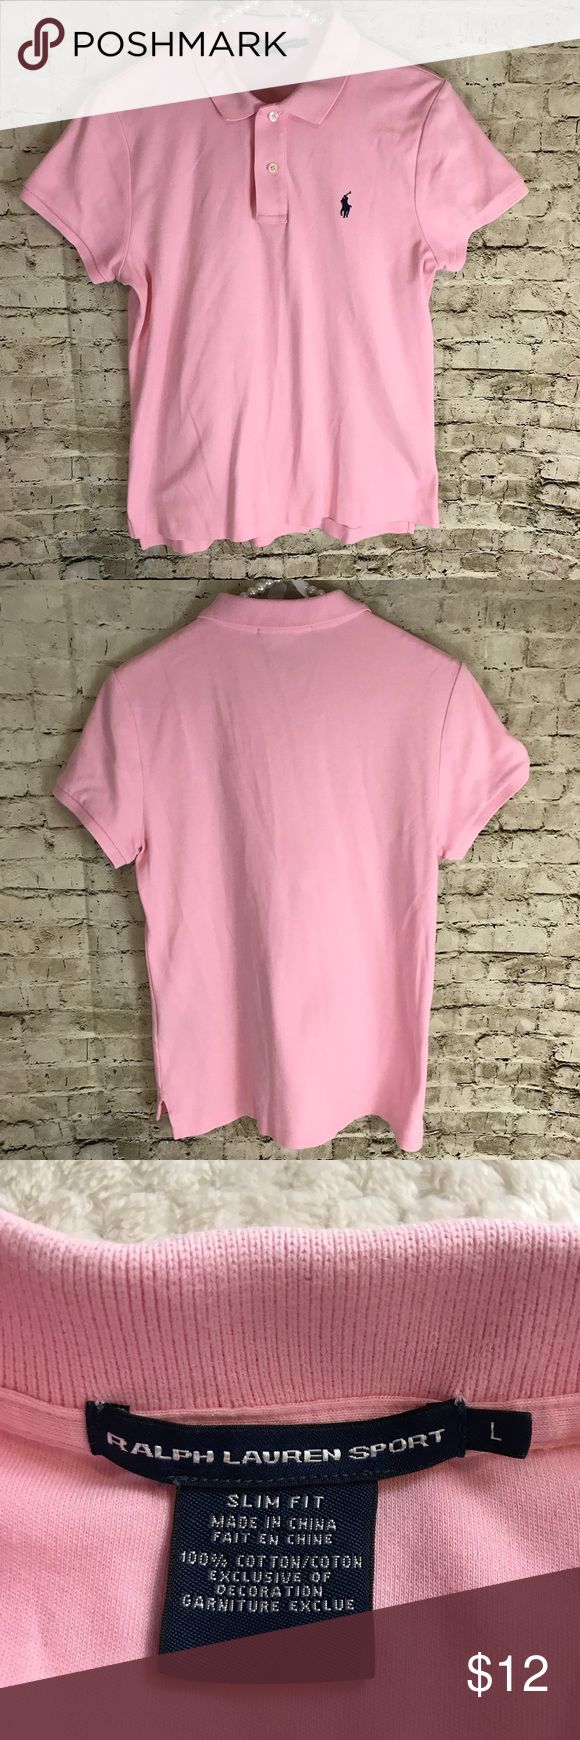 Women's Ralph Lauren Sport Pink Polo Shirt Large You will be purchasing a Women's Ralph Lauren Sport Pink Short Sleeve Shirt  Size Large  - please see photos for measurements to determine fit. It is used. If you have any further questions, please do not hesitate to ask. Thanks for Looking!  Sku# EMP22318 A13-26 Ralph Lauren Tops